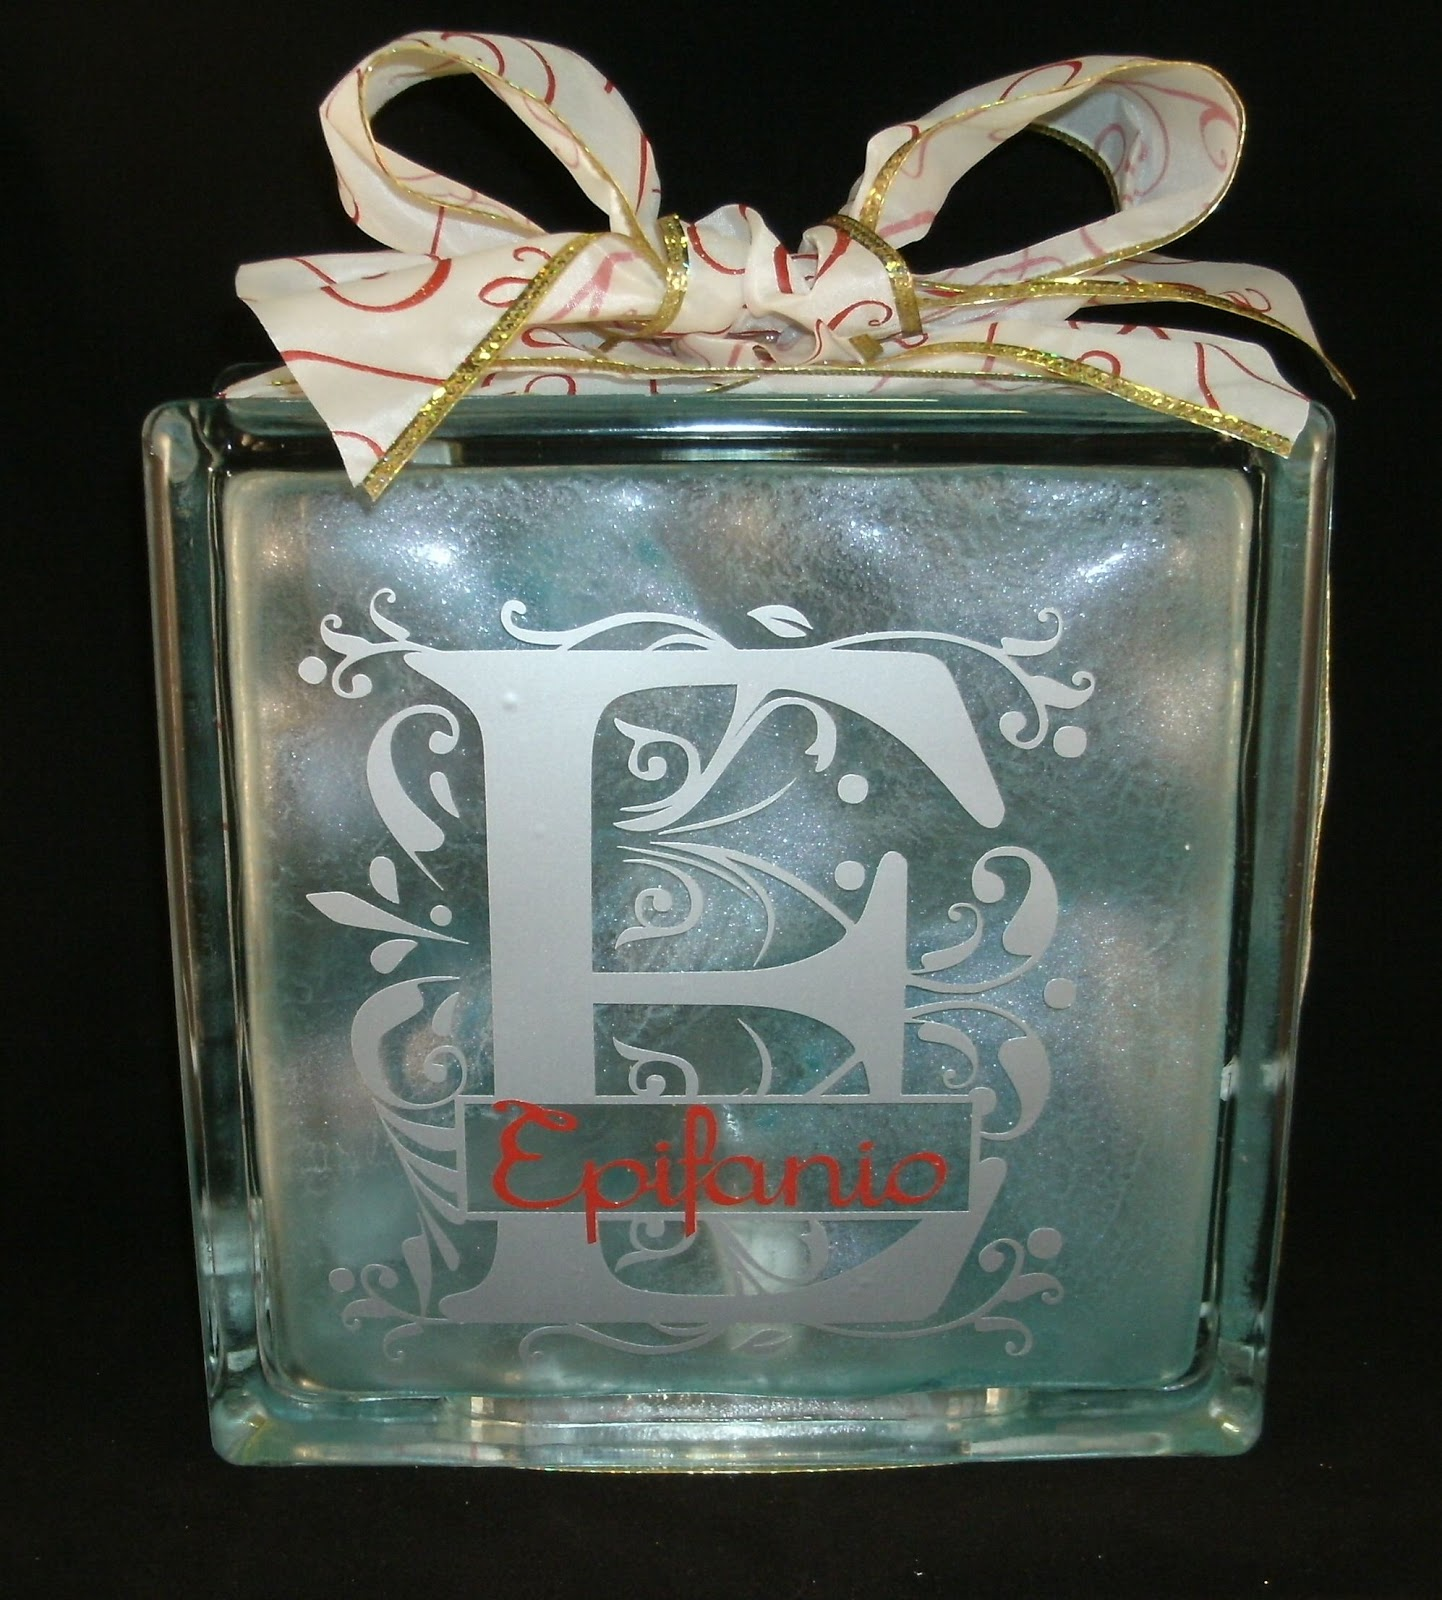 Ima cutter crafts glass block gift 2 for Glass block for crafts